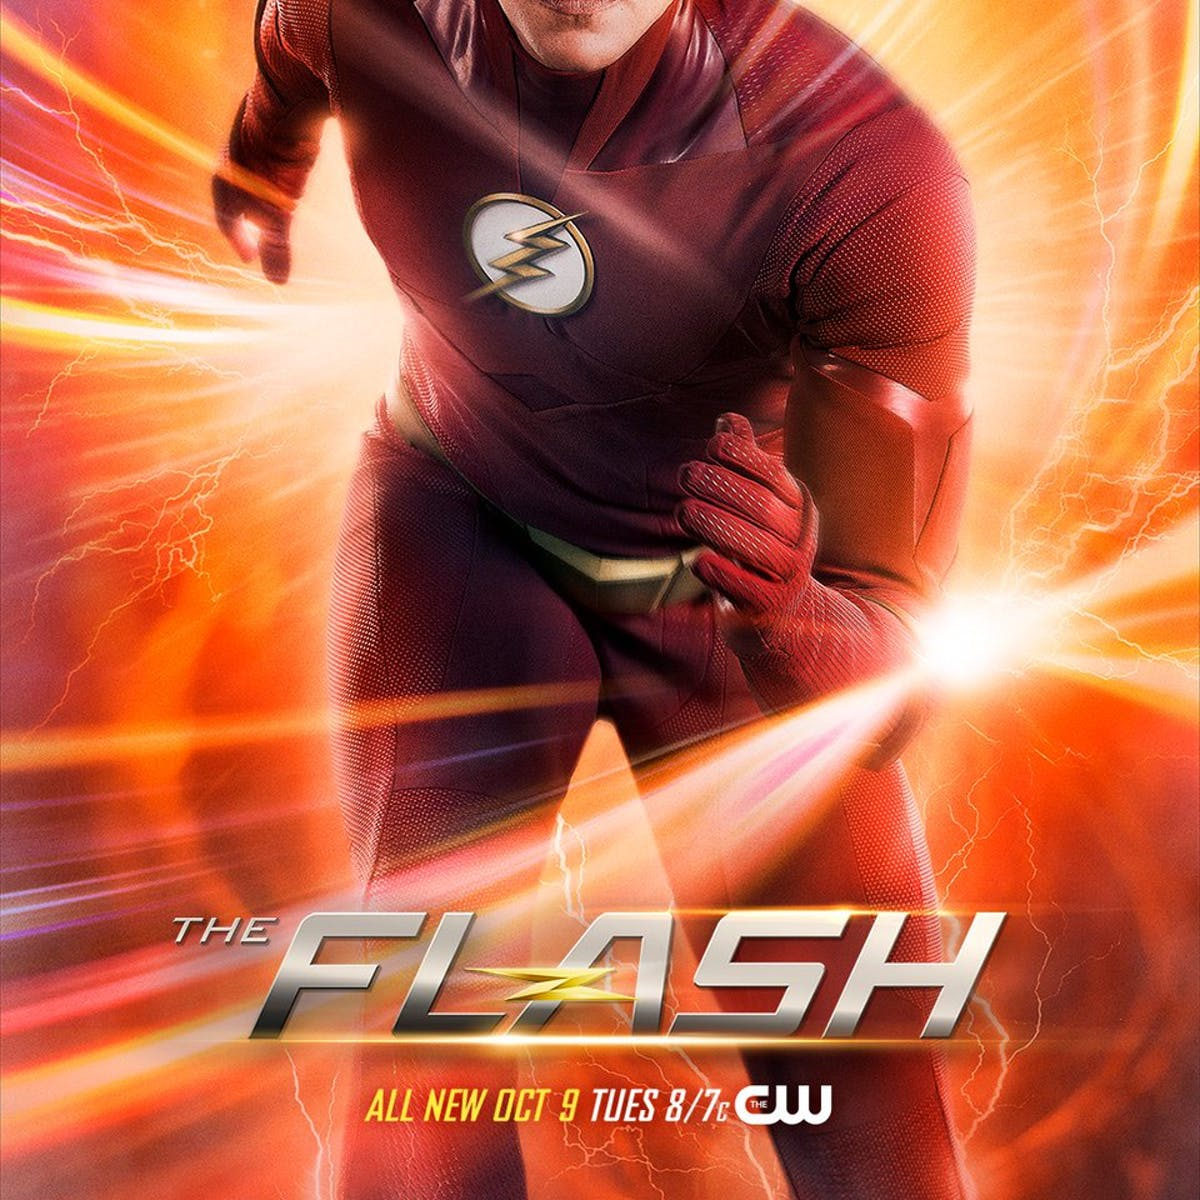 The Flash Season 5 Costume Photo Reveals What Barry Wears In The